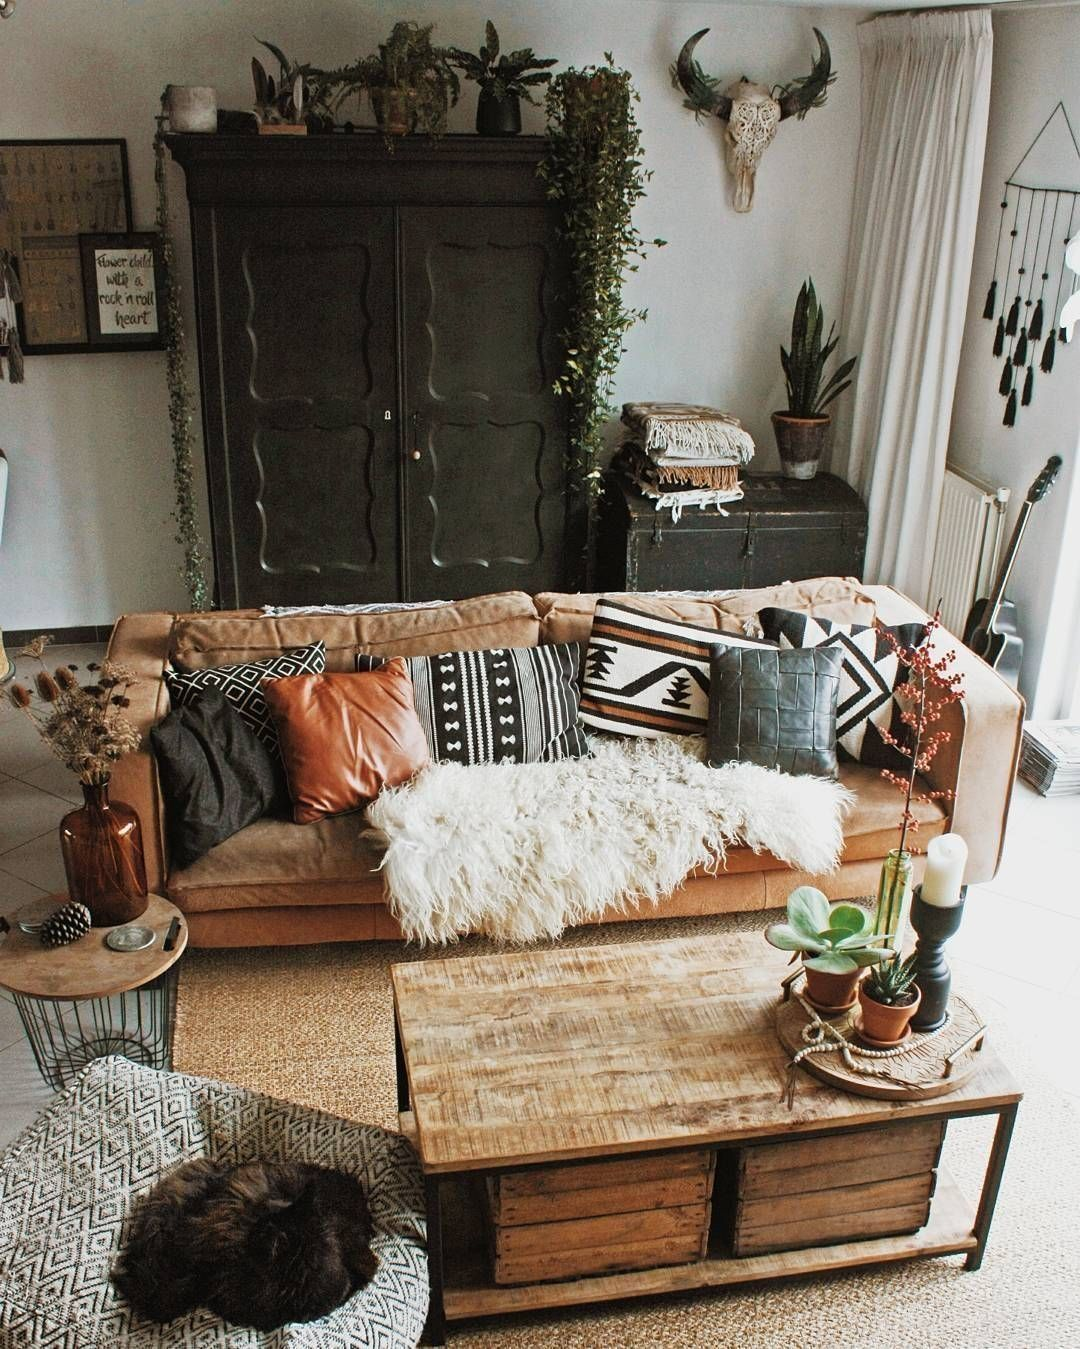 41 Cute Bohemian Home Decor For Spring Decoarchi Com Farm House Living Room Living Room Designs Home Decor